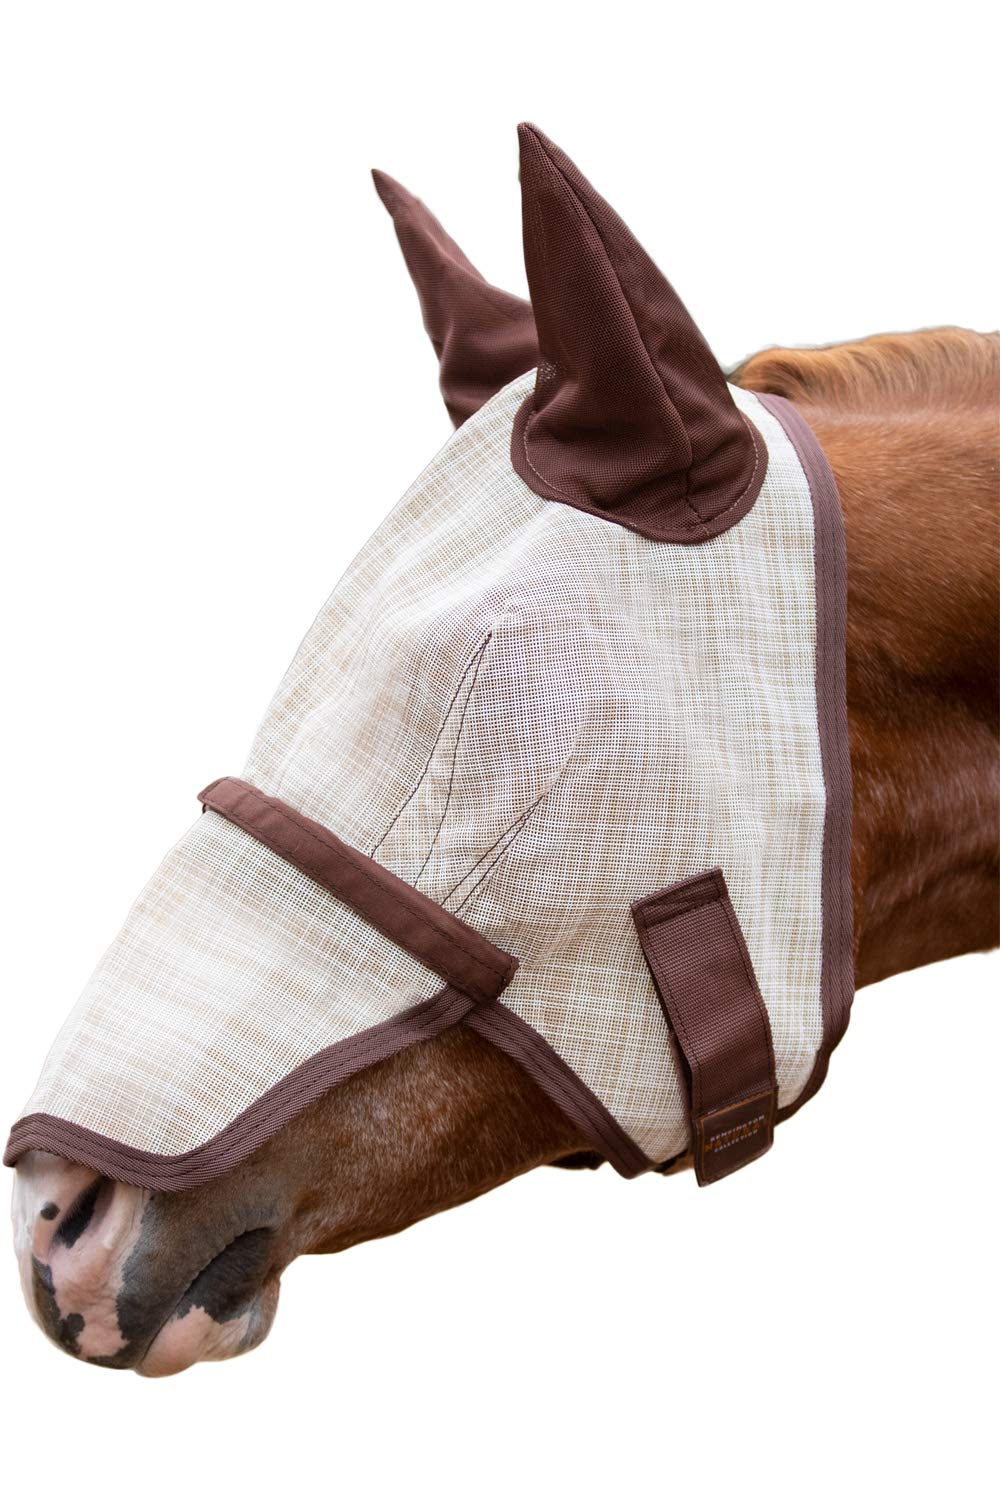 Kensington Signature Fly Mask with Removable Nose and Soft Mesh Ears - Protects Horses Face, Nose and Ears from Biting Insects and UV Rays While Allowing Full Visibility (M, Grey) by Kensington Protective Products